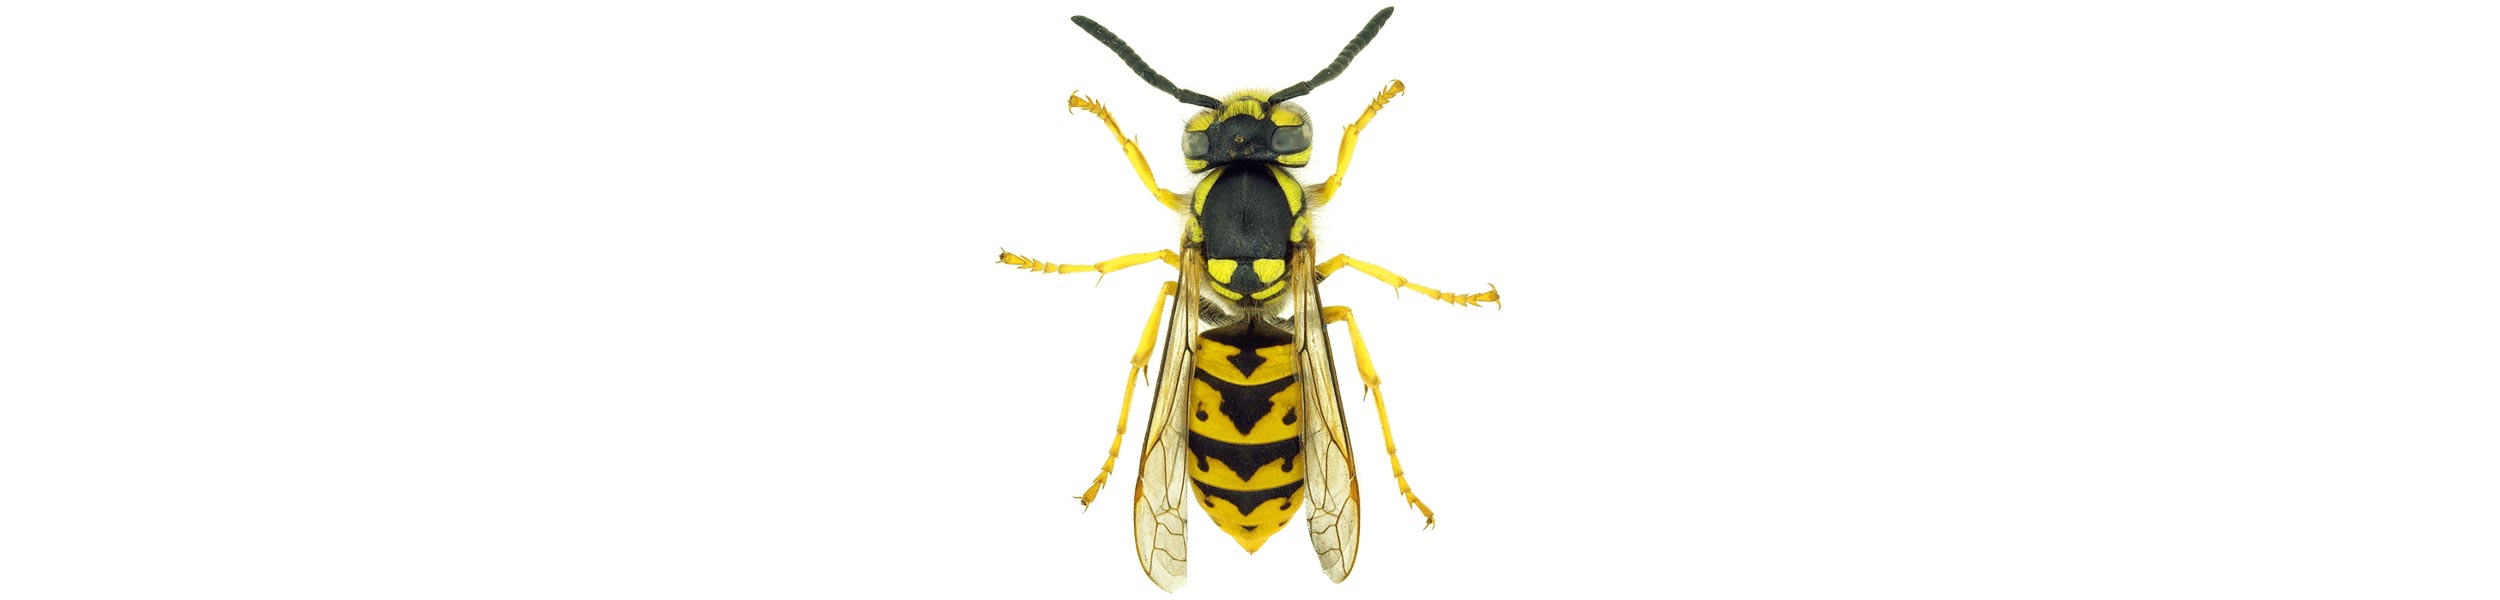 ACE Exterminating-Pest-Control-Wasps-Header